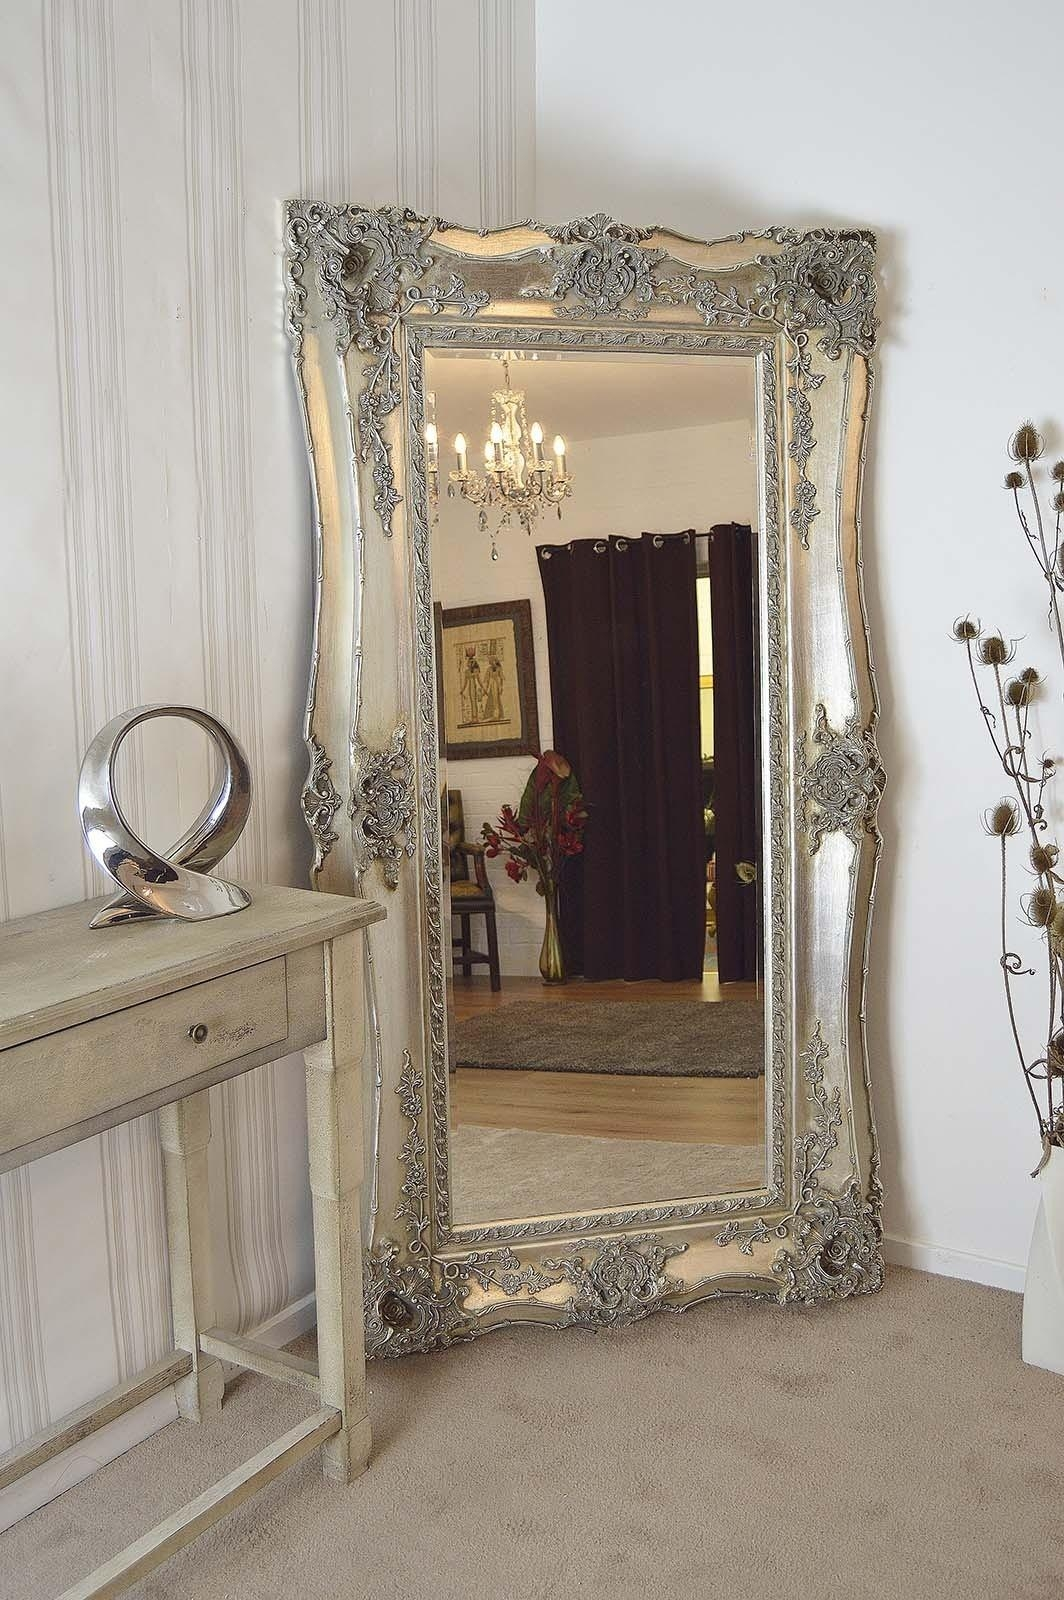 Homeware: Oval Full Length Standing Mirror | Large Floor Mirrors Throughout Antique Mirrors Cheap (View 7 of 20)